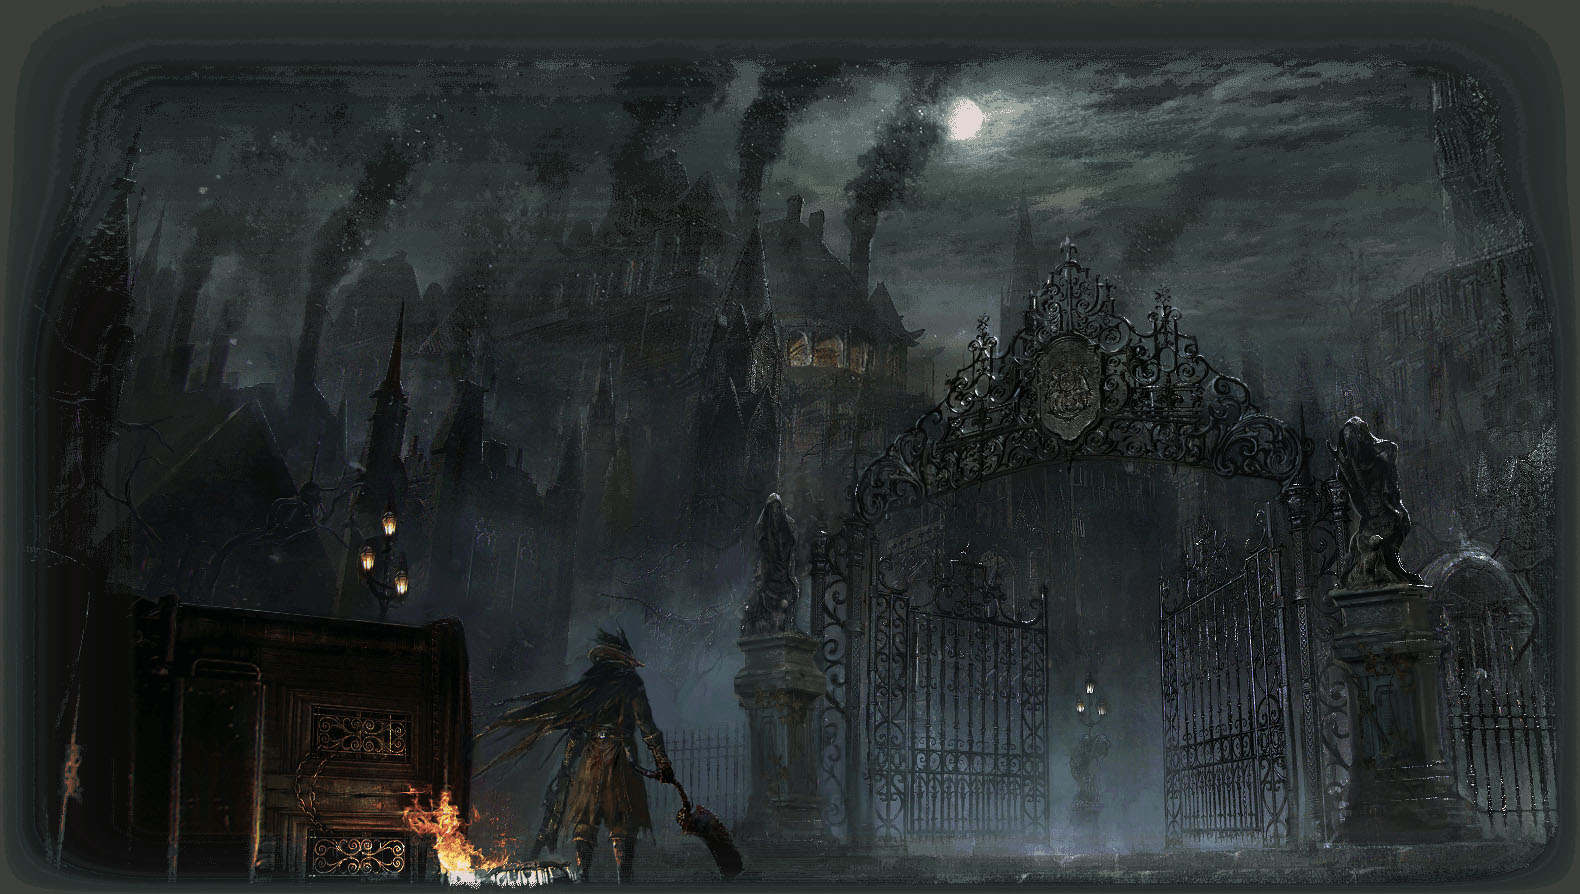 bloodborne-artwork-2.jpg